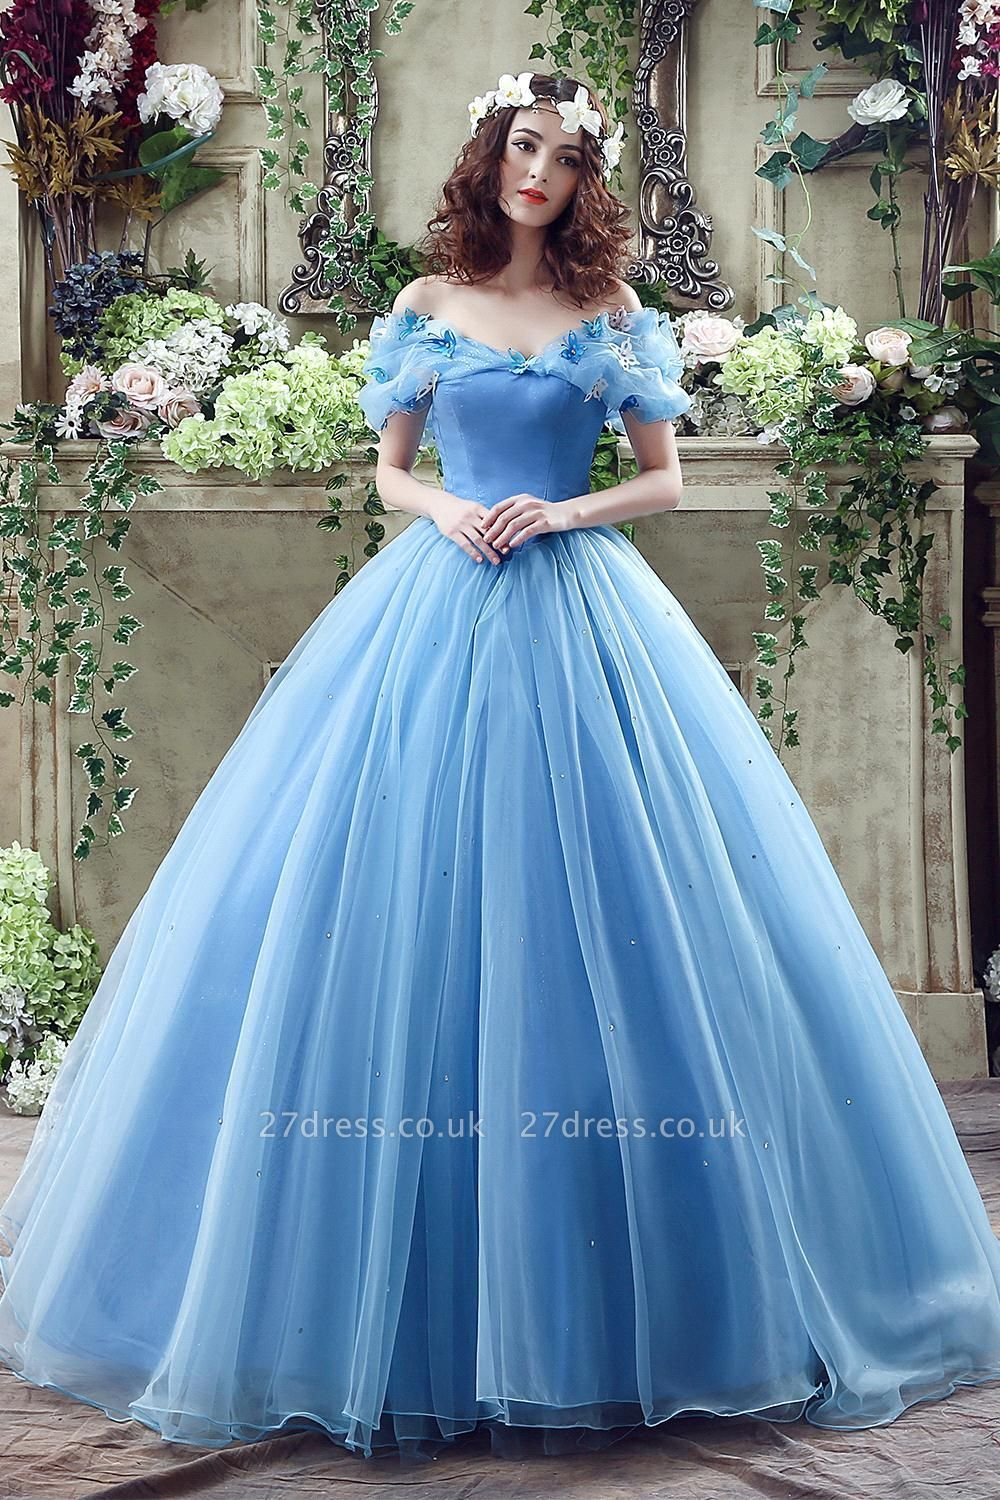 Princess Off-the-Shoulder Sequins Tulle Ball Gown Wedding Dress On Sale